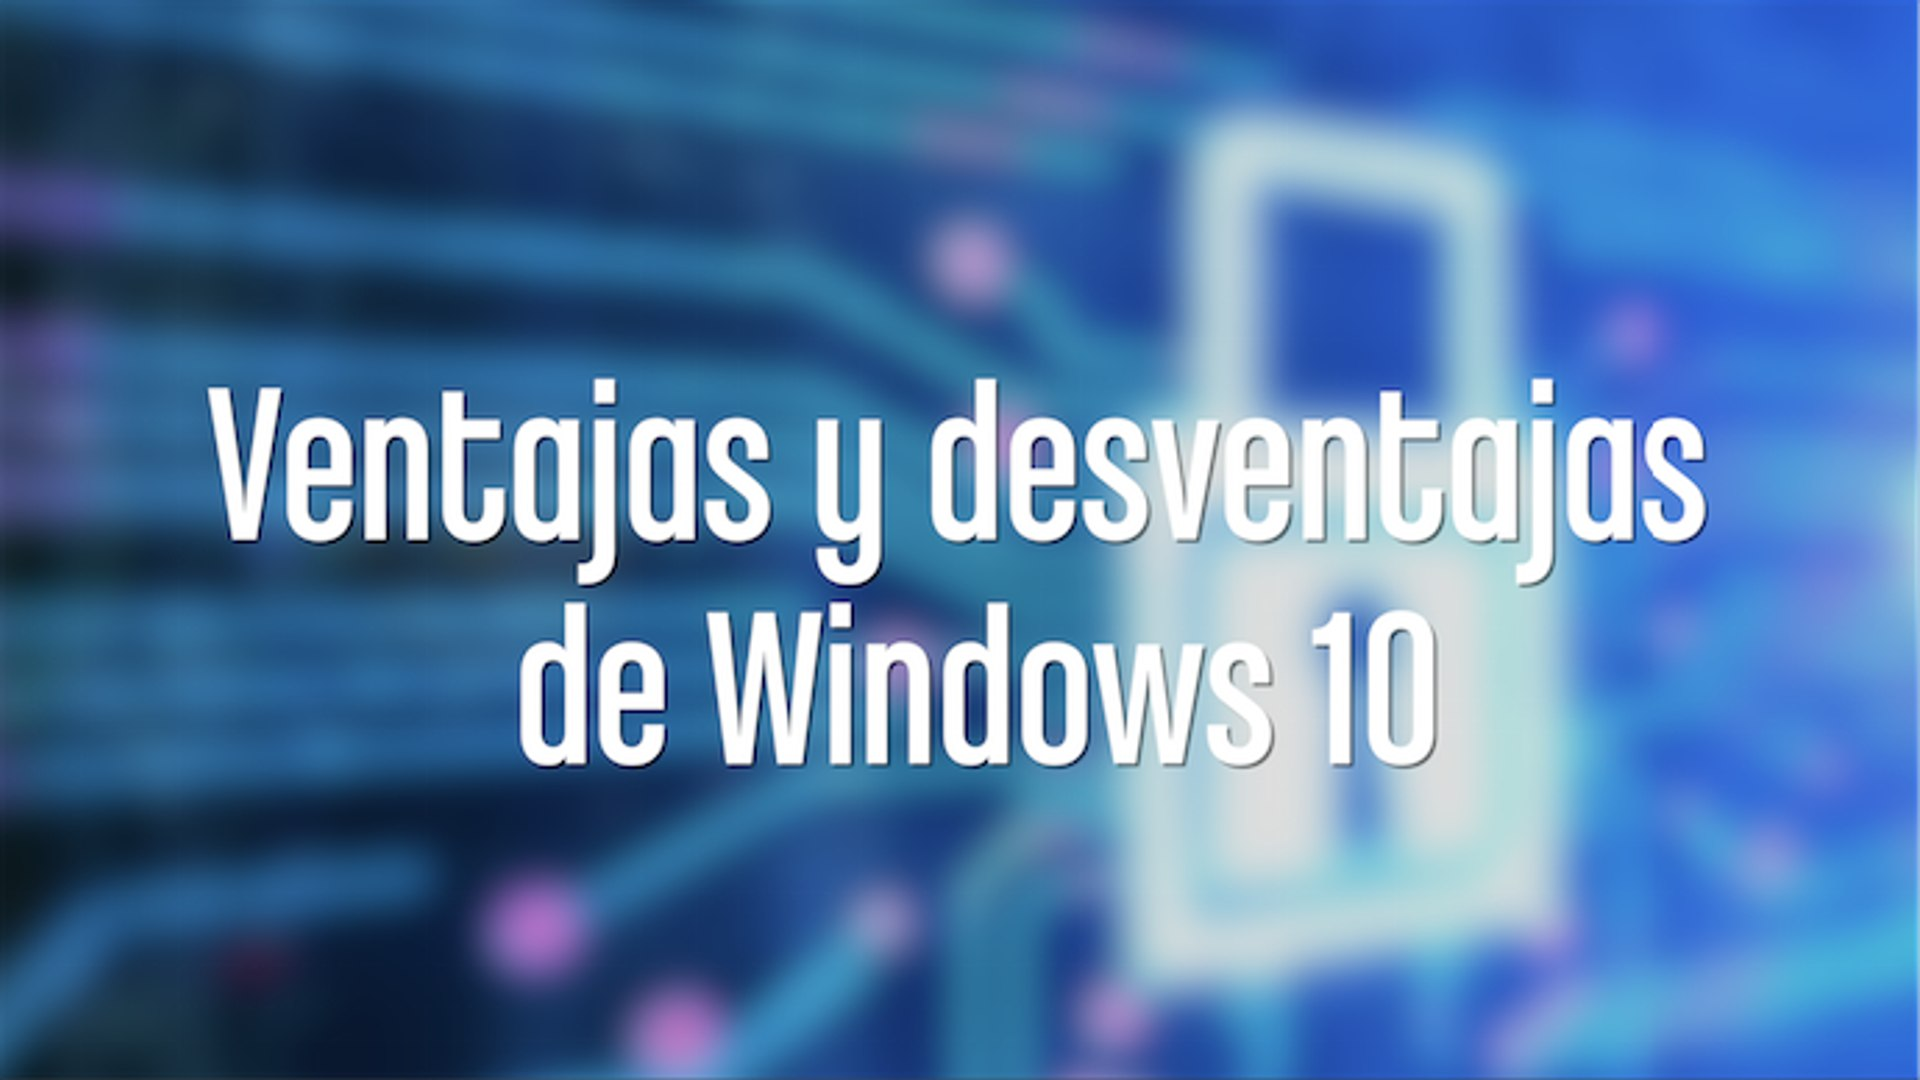 Ventajas y deventajas de actualizar a Windows 10